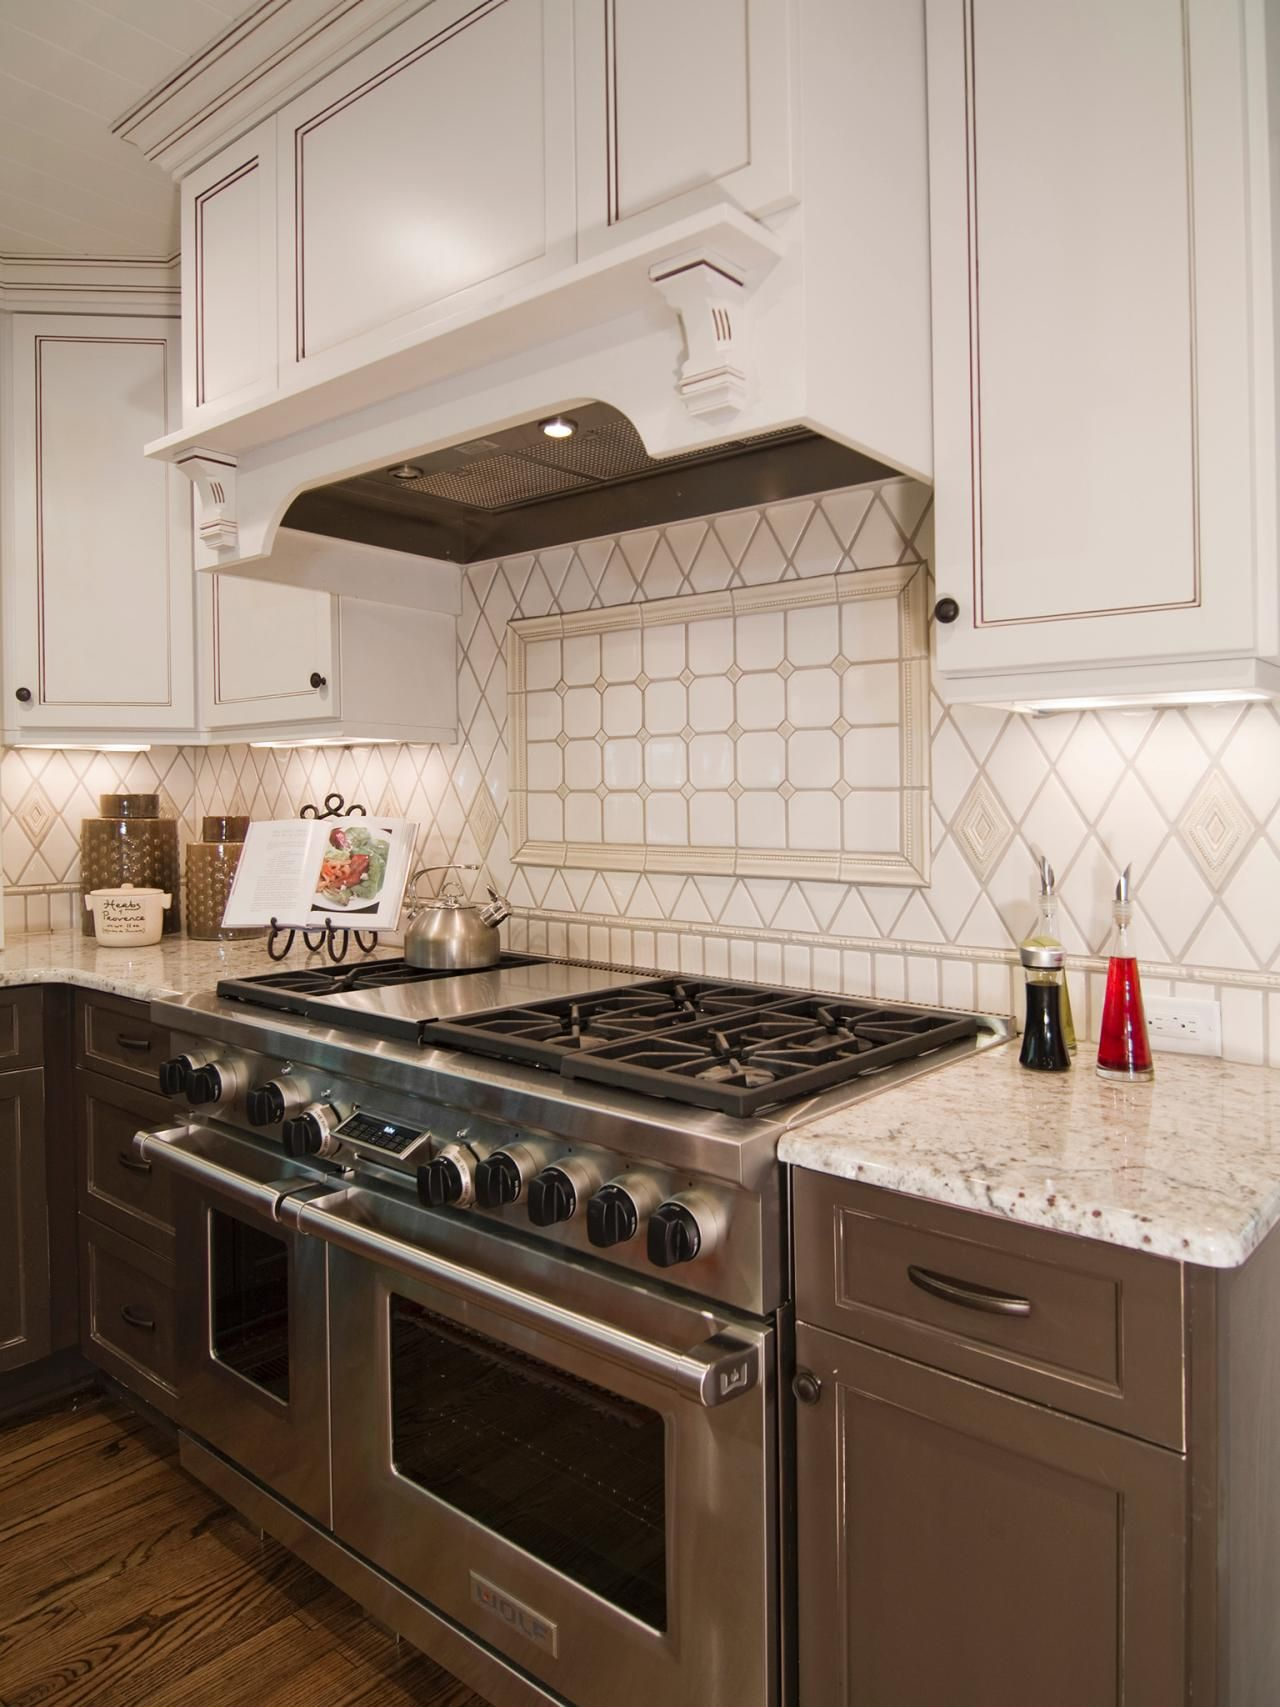 Taupe Kitchen Stunning Design That Has Diamond Tile